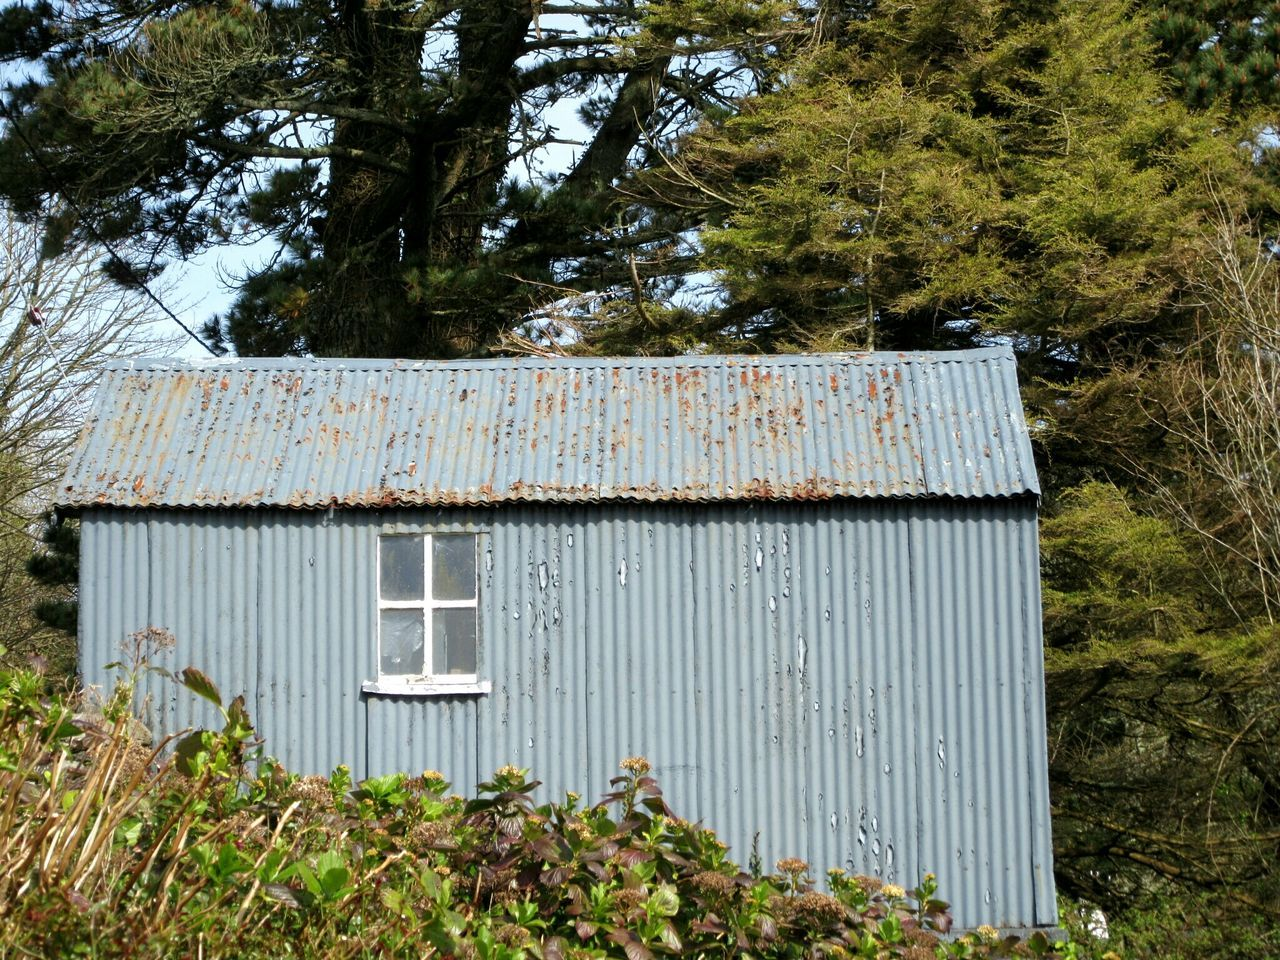 Tin shed Shed Sheds Corrugated Iron Grey Paint Rusty Monterey Cypress Glandore, Ireland West Cork Wildatlanticway Ireland